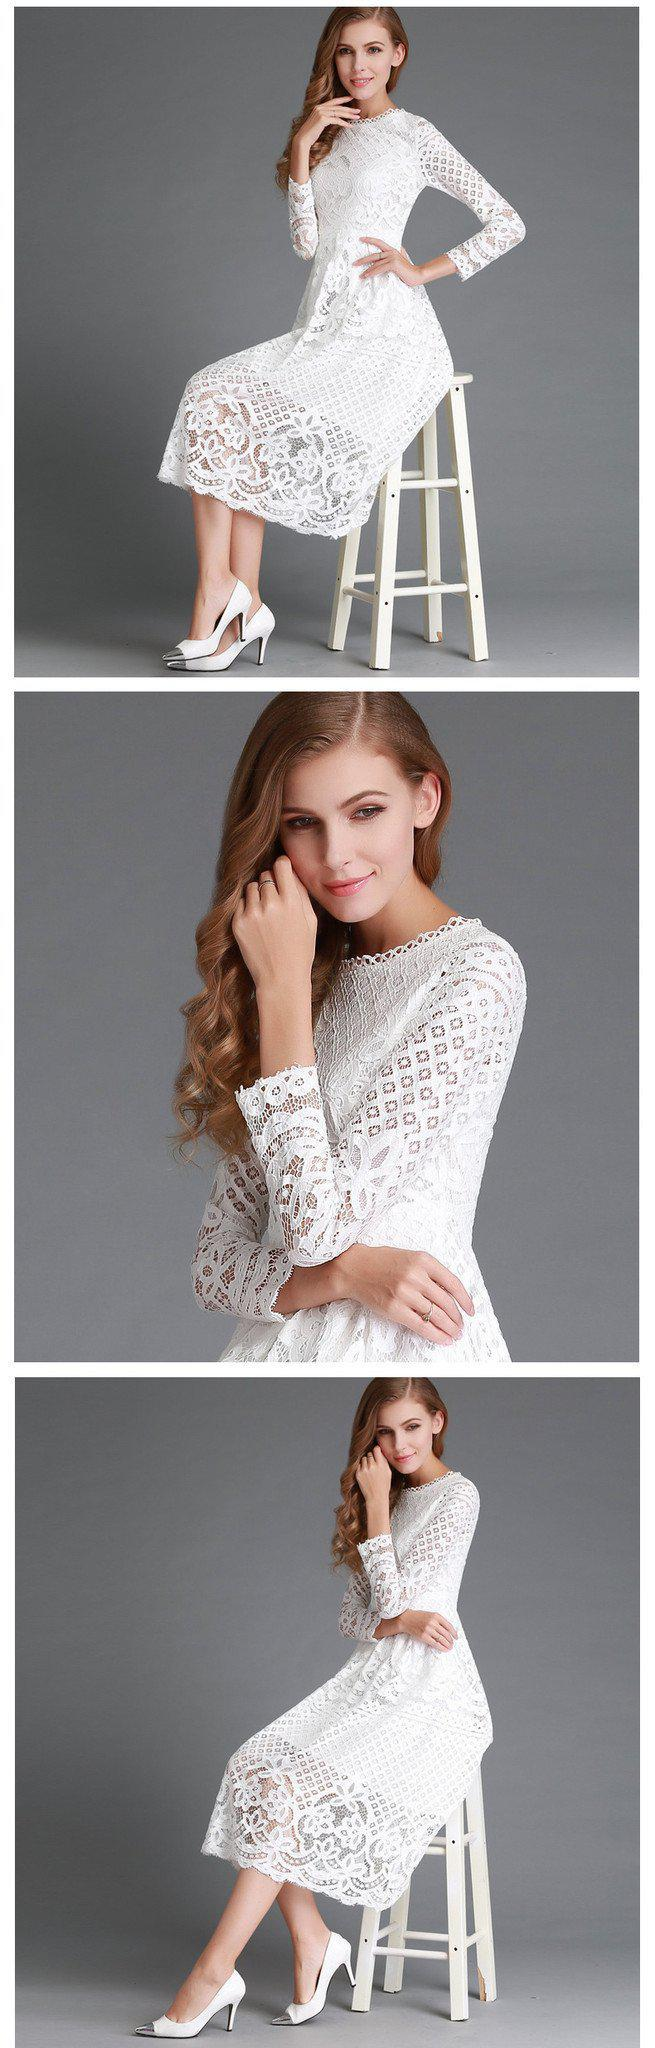 New Autumn Fashion Hollow Out Elegant White Lace Elegant Party Dress High Quality Women Long Sleeve Casual Dresses-Dress-SheSimplyShops